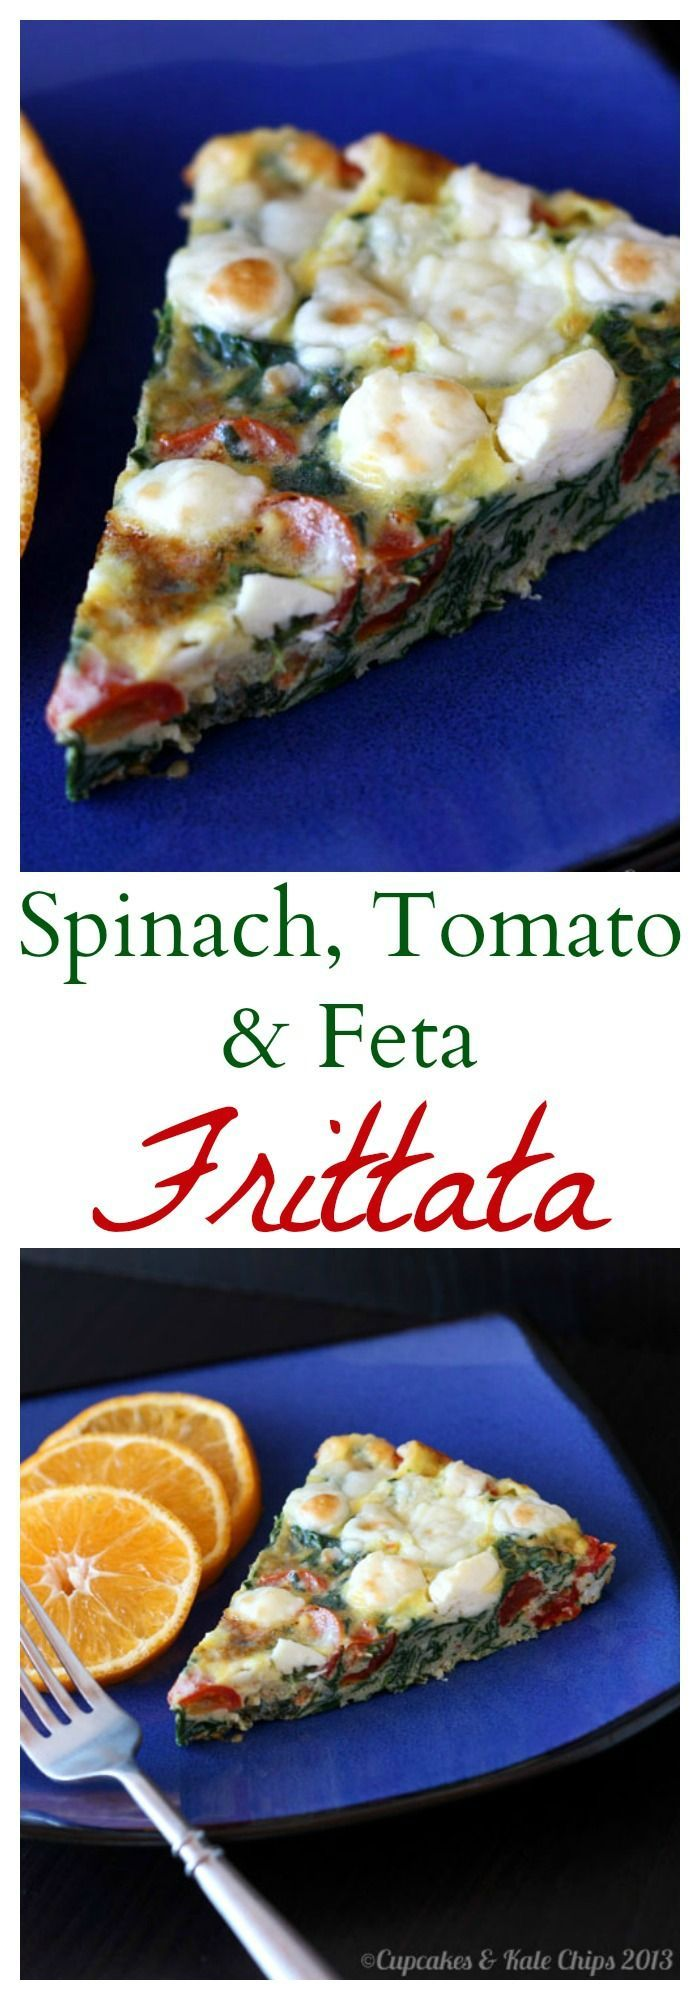 Spinach, Tomato & Feta Frittata is a simple meatless meal for breakfast, brunch, or breakfast for dinner (aka brinner) | cupcakesandkalechips.com | gluten free, vegetarian #baconfrittata